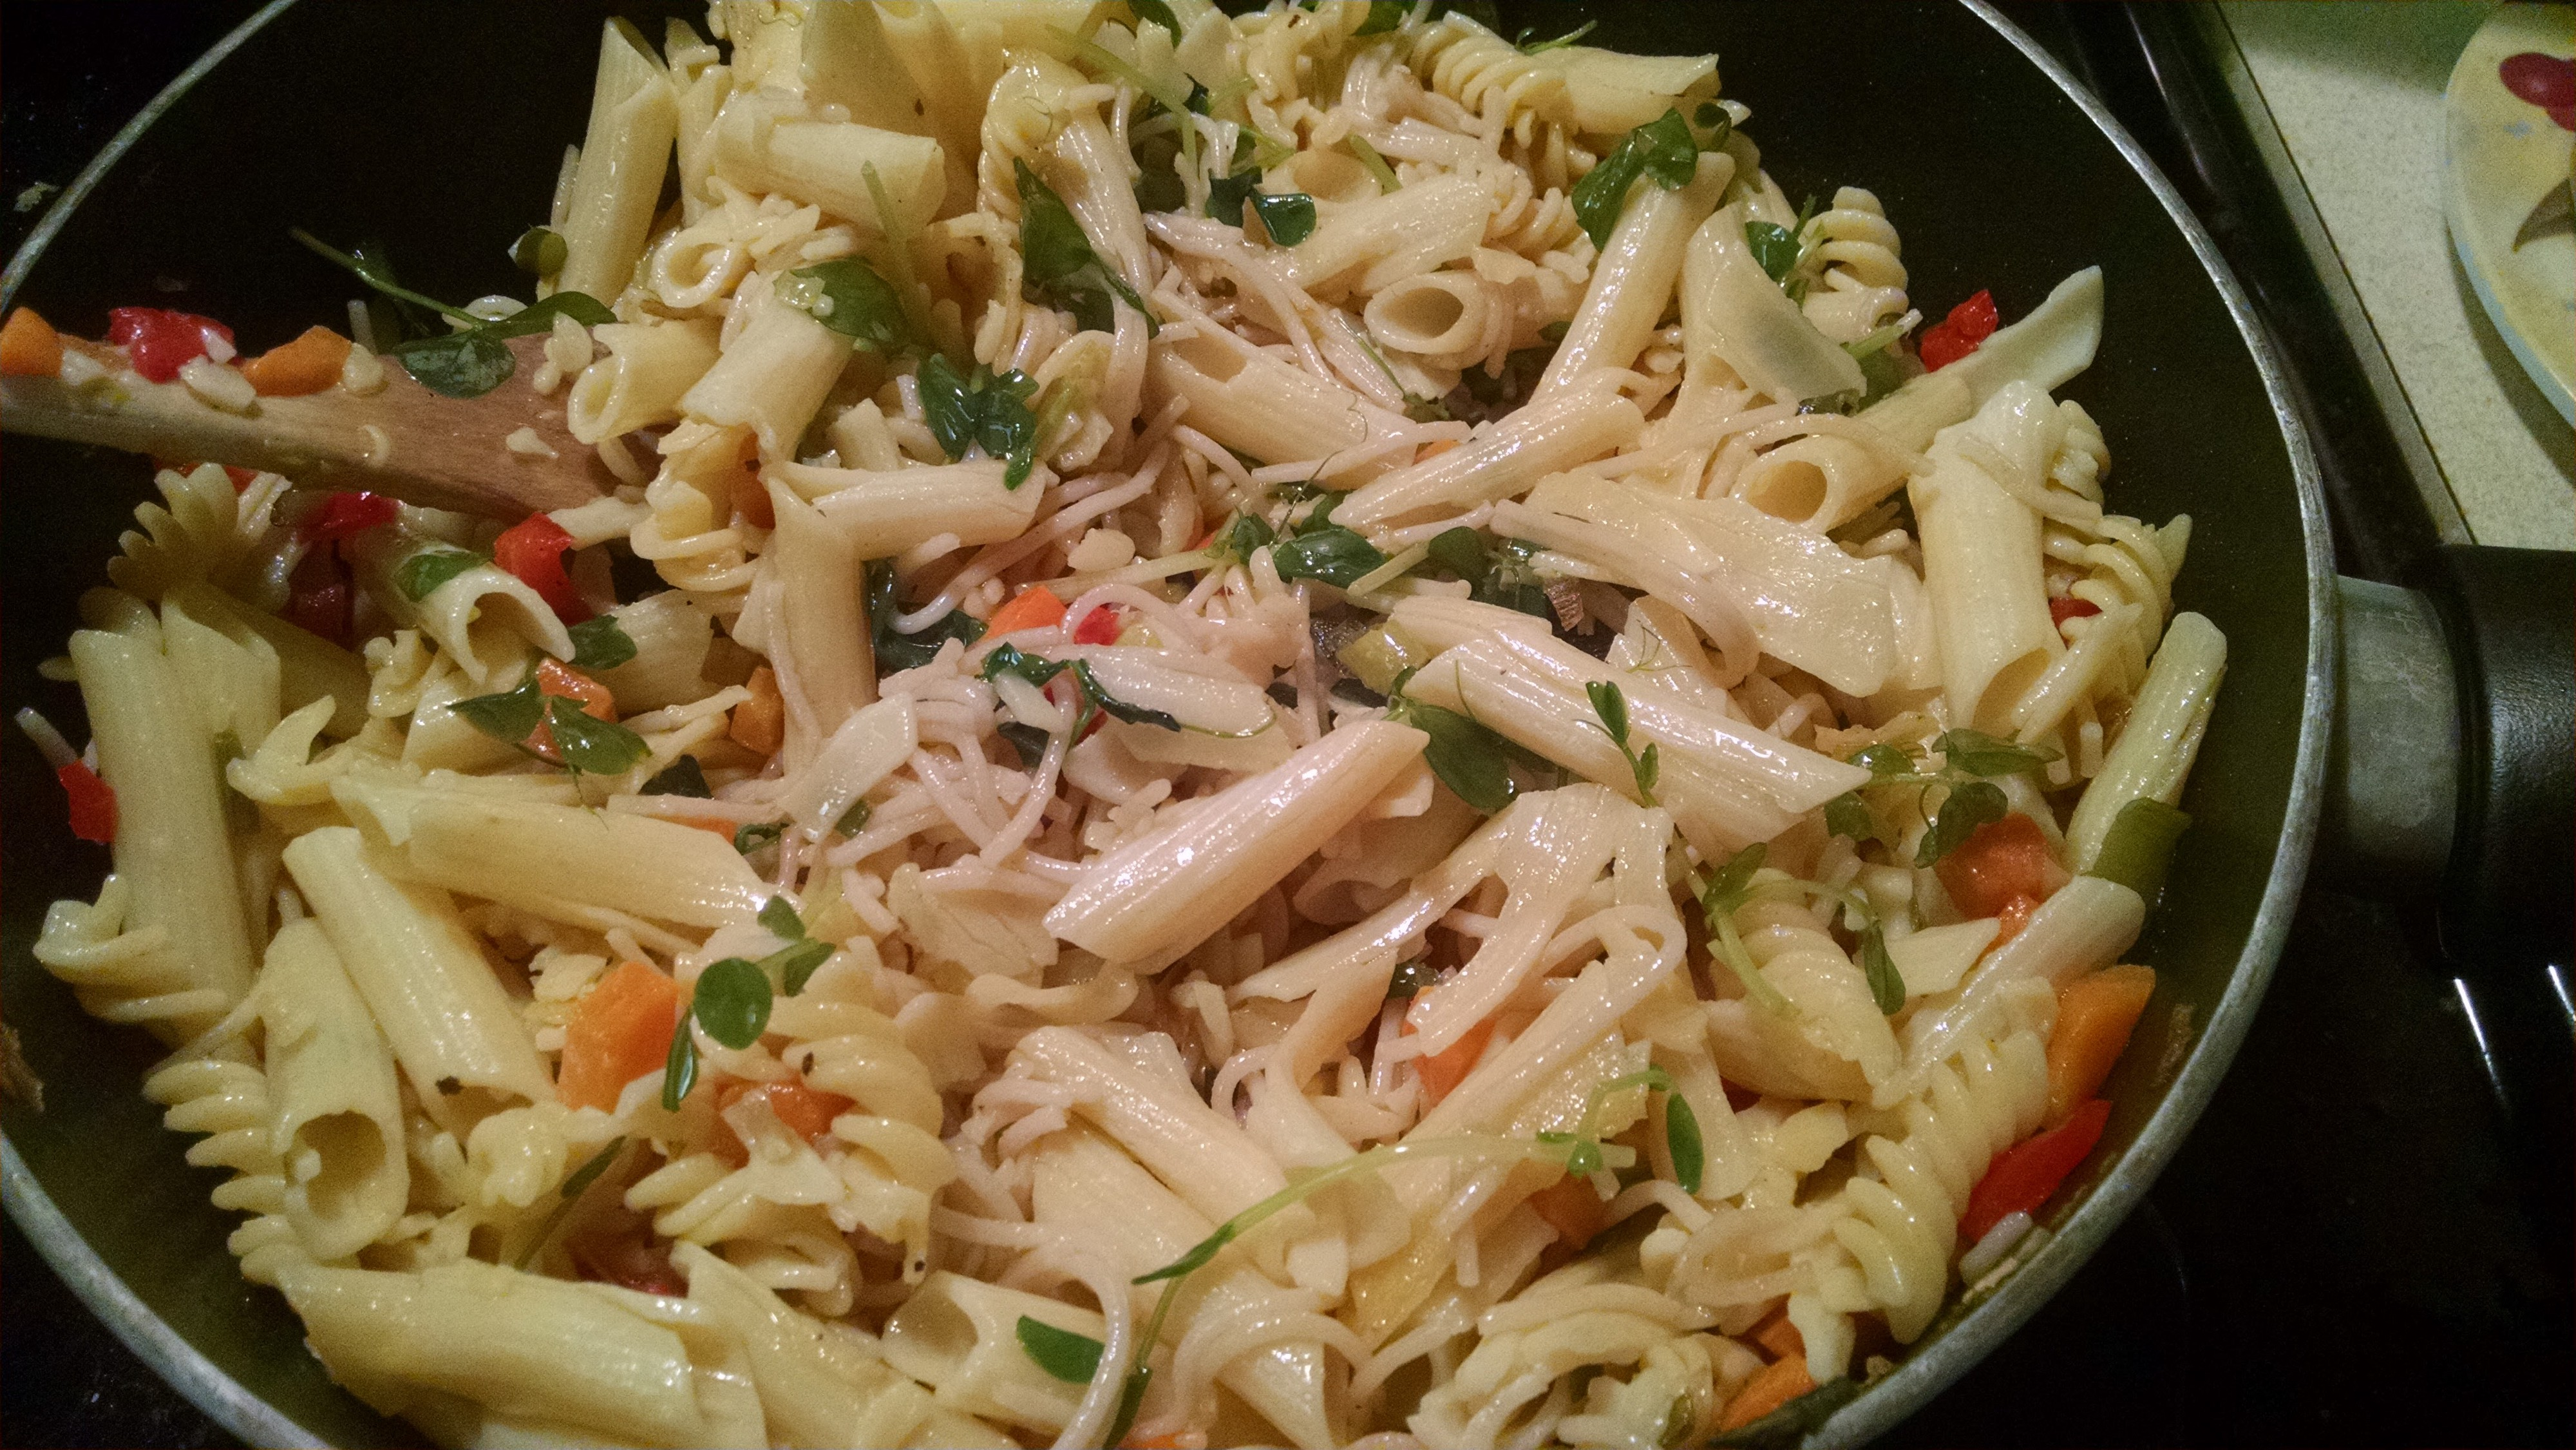 Photo of pasta and vegetables mixed together and cooking in a pan.